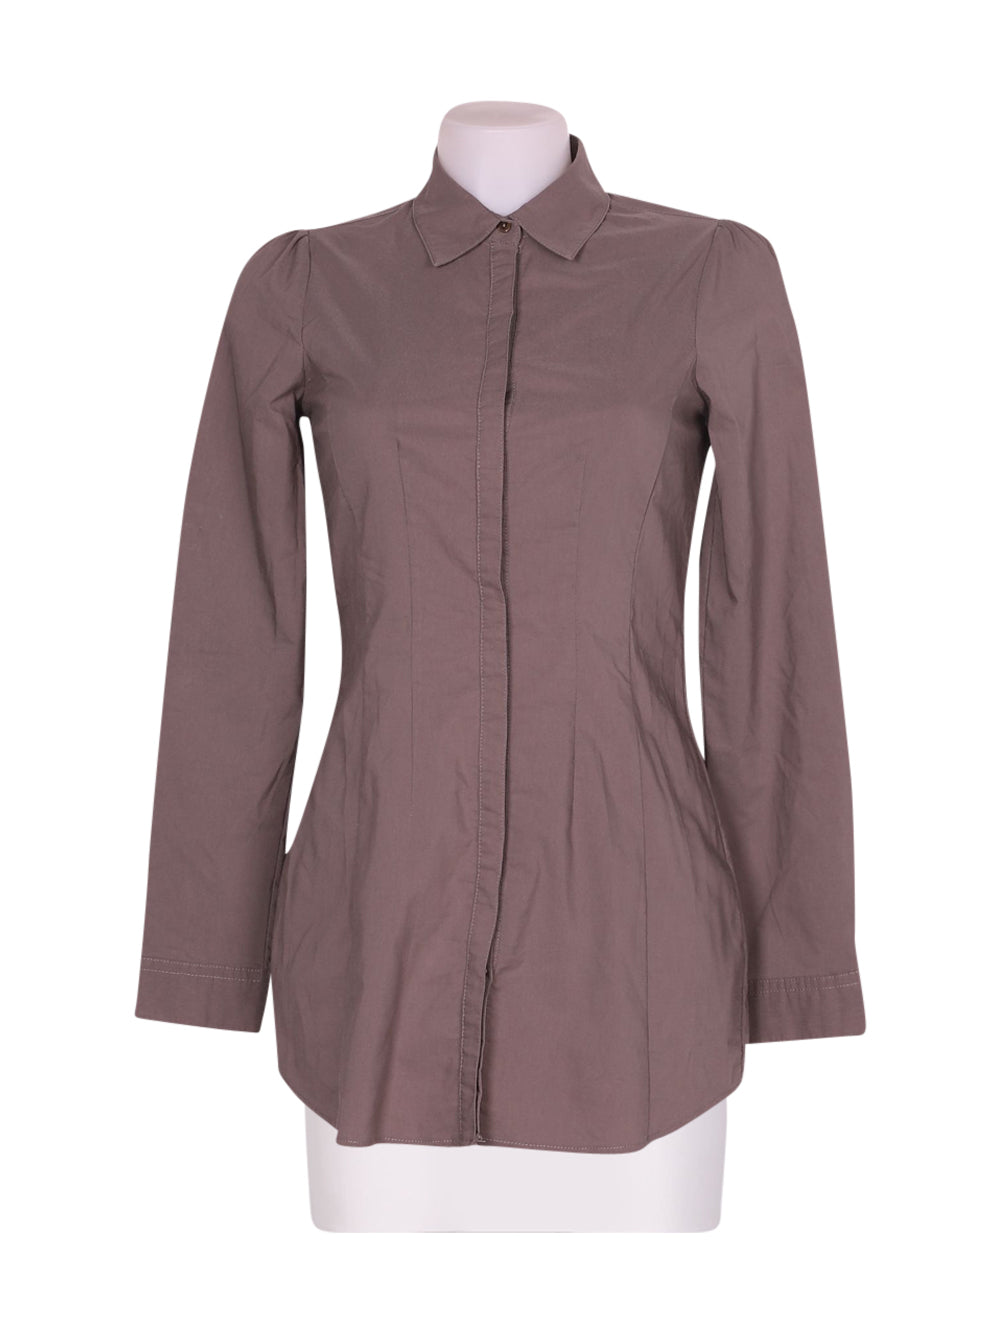 Front photo of Preloved Sisley Grey Woman's shirt - size 8/S